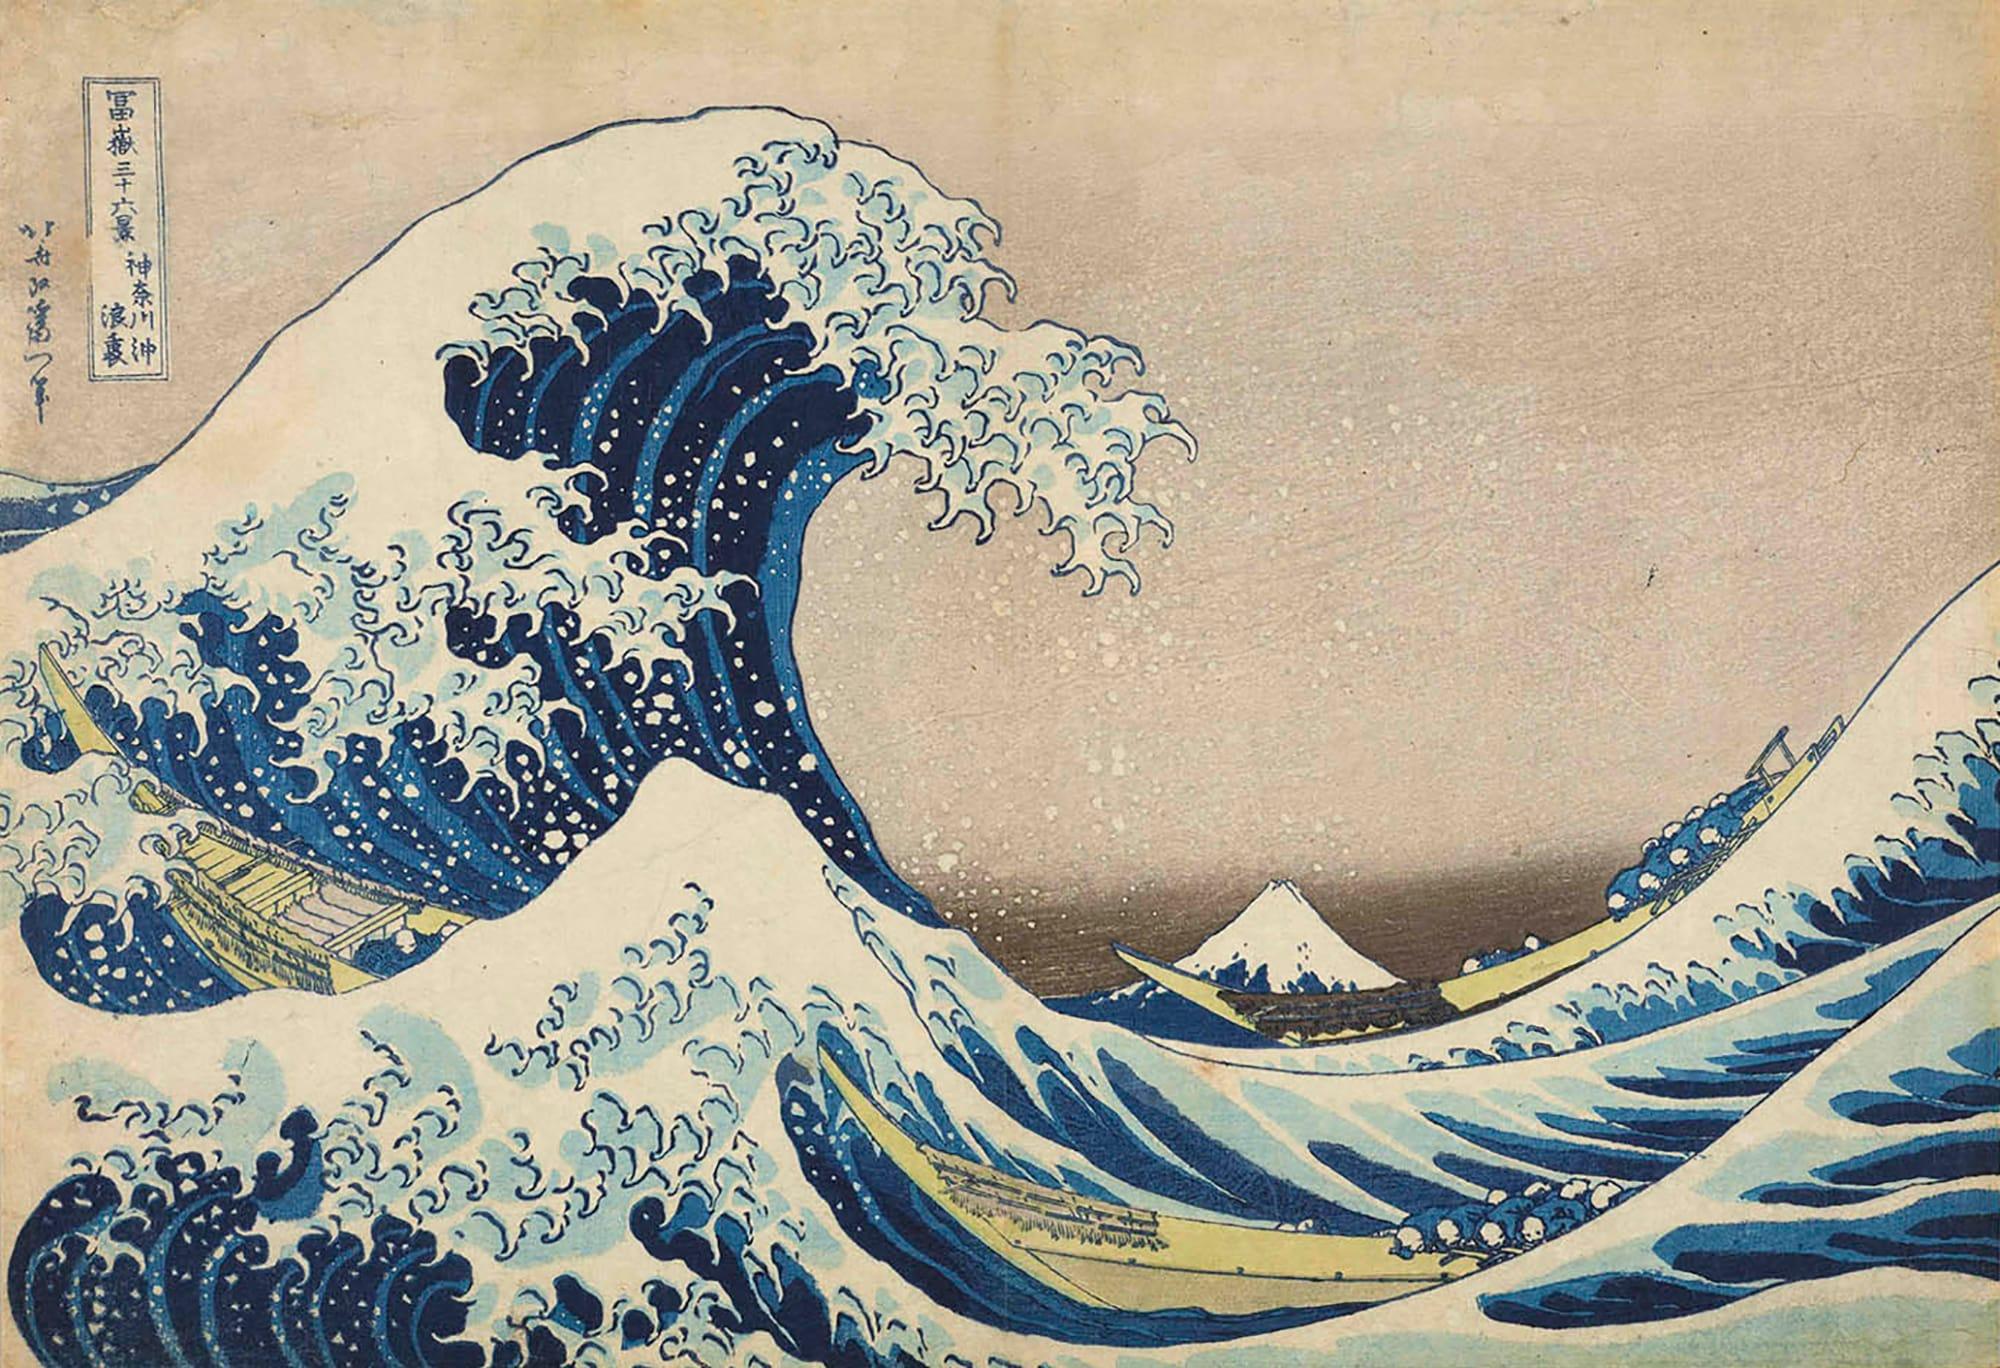 """Katsushika Hokusai, The Great Wave off Kanagawa from the Series Thirty-six Views of Mount Fuji, Yoko-oban, Nishiki-e, Around the 1st to 4th year of the Tenpō Era (1830-1833), Ota Memorial Museum of Art. The world's most famous Japanese art, known as """"The Great Wave"""" will be featured at the exhibition. While the three museums will be changing the artworks during exhibition, this masterpiece will be displayed during the entire exhibition."""